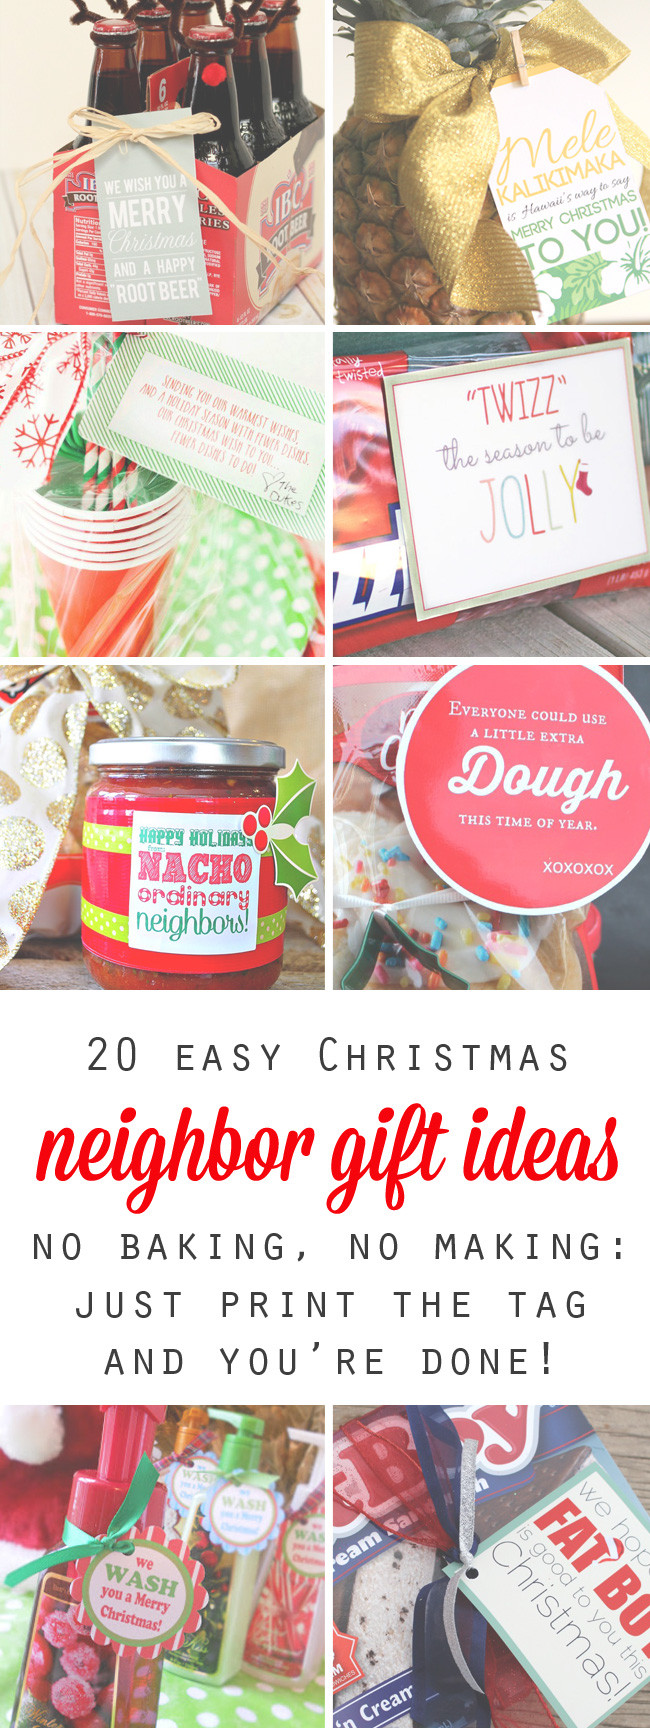 Best ideas about Free Gift Ideas . Save or Pin 20 quick easy and cheap neighbor t ideas for Now.